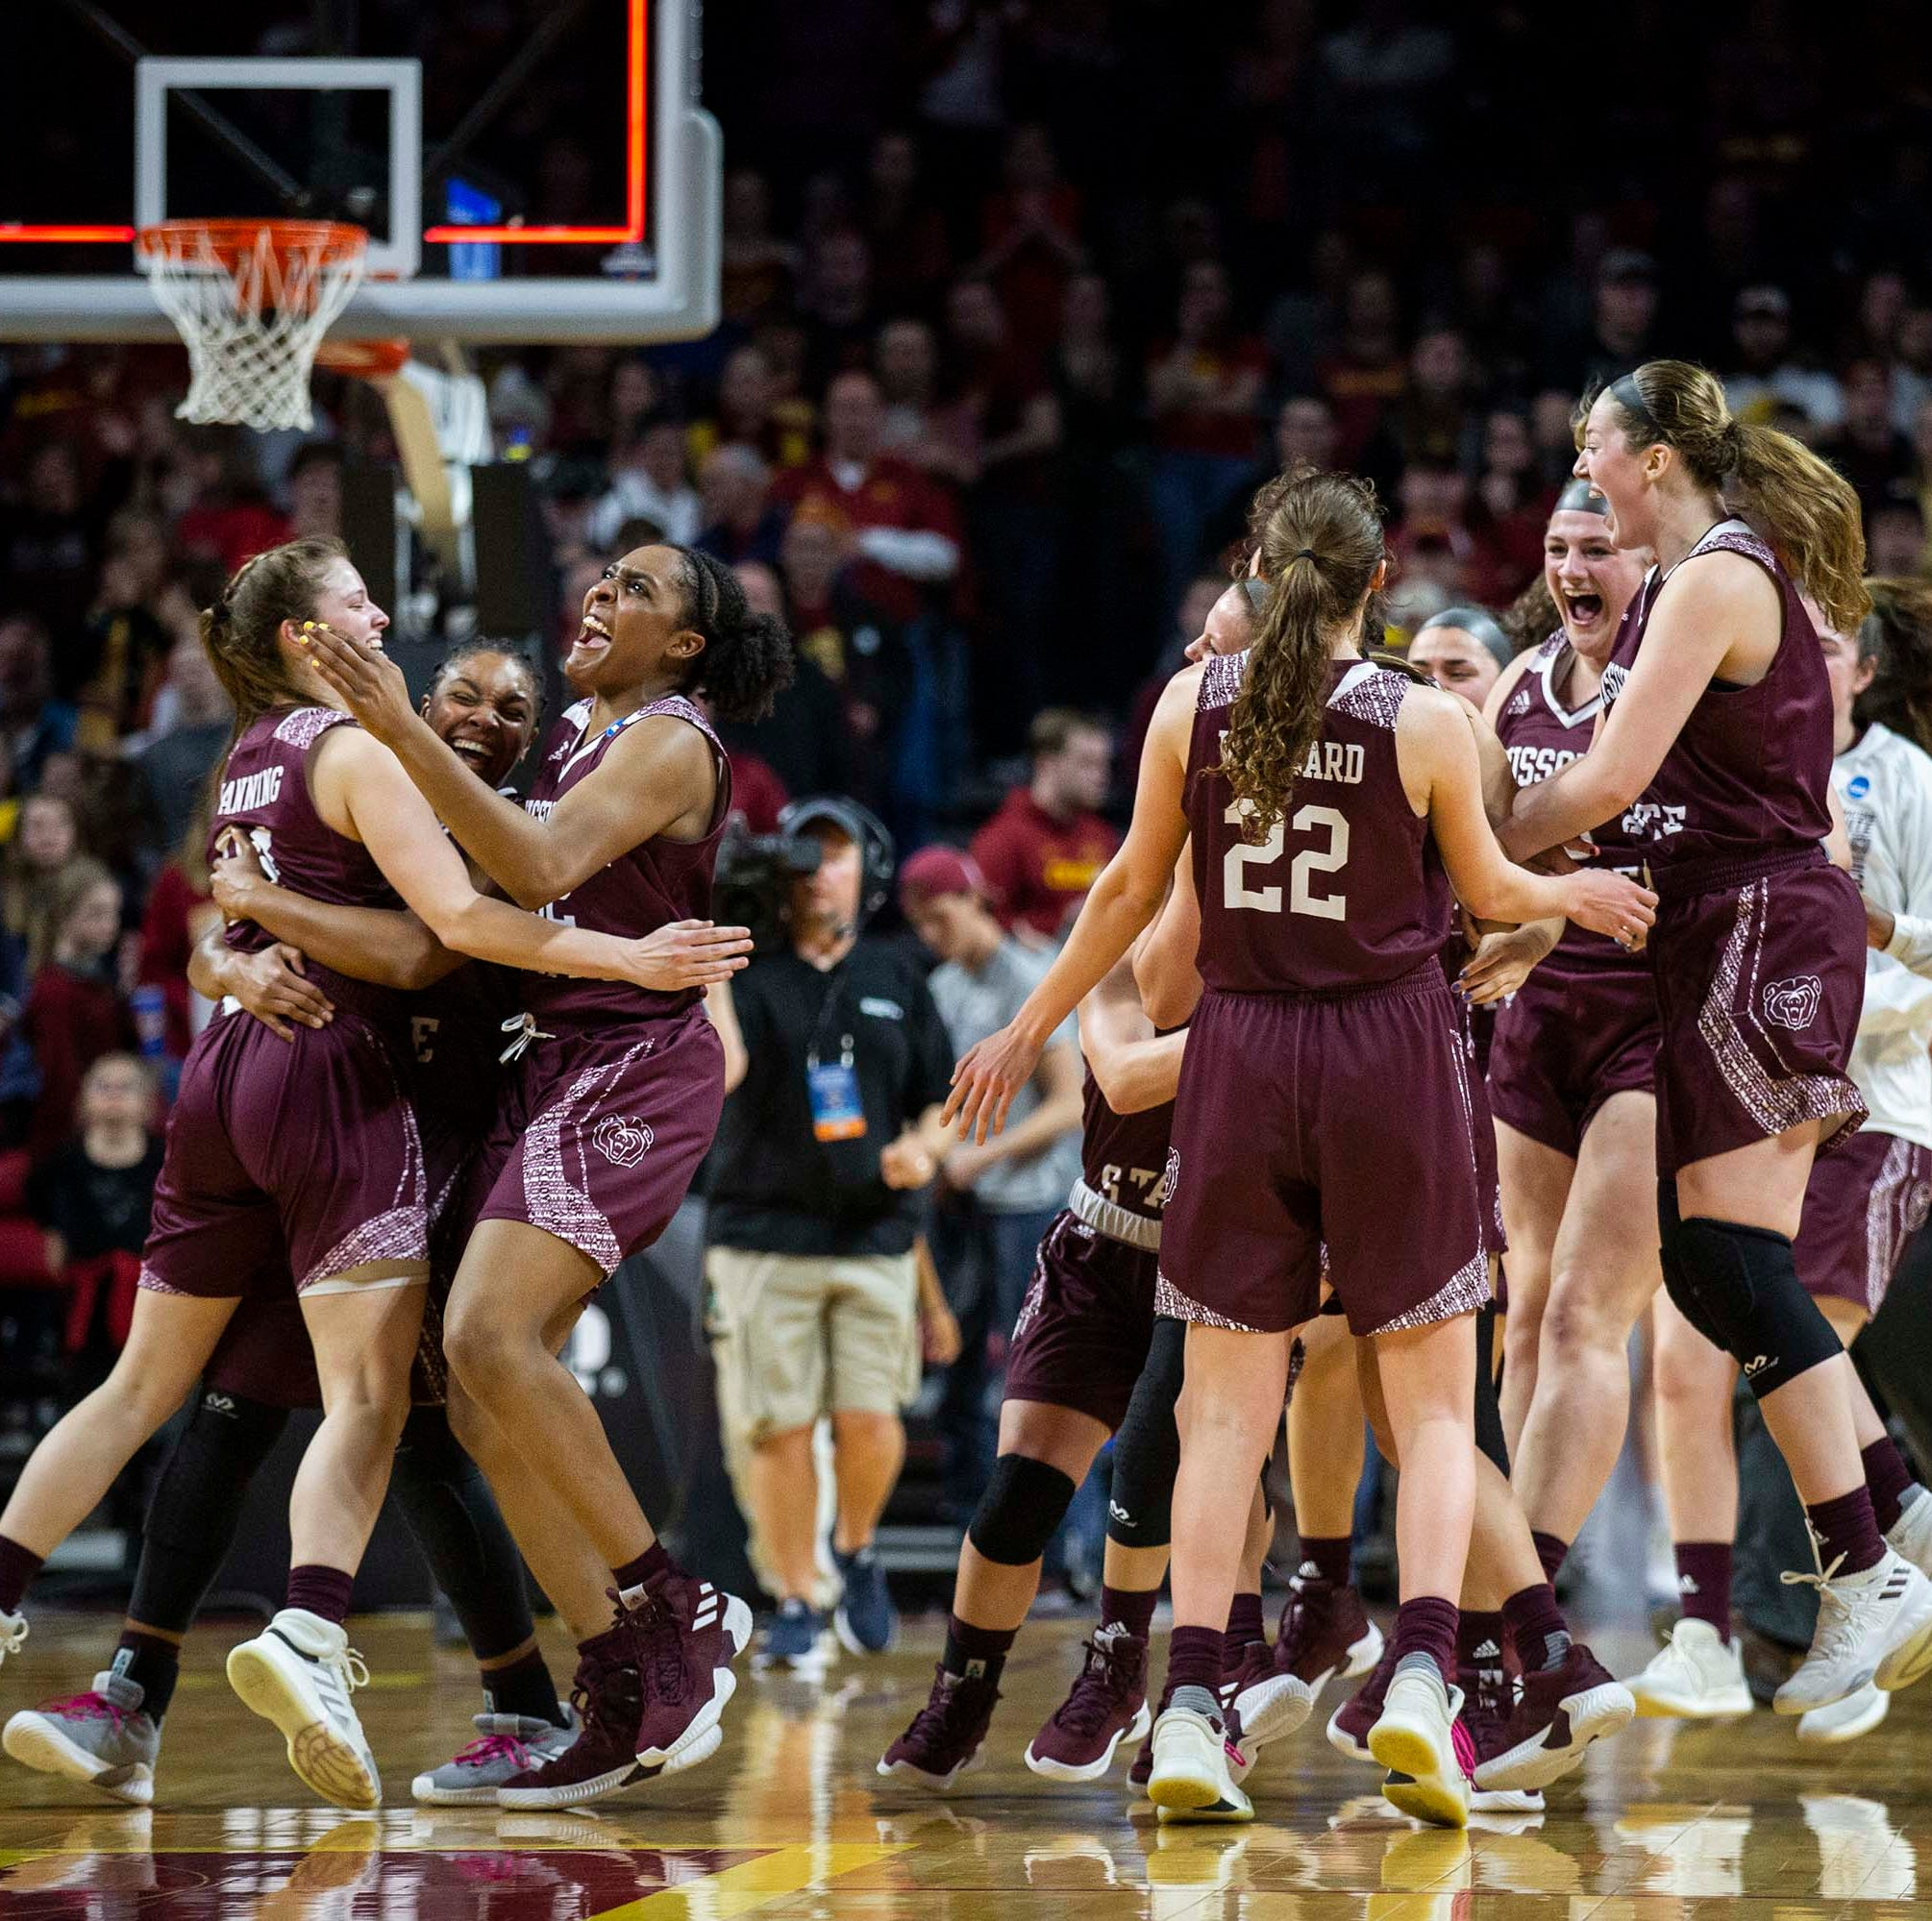 'A dream come true': MSU Lady Bears claim Cinderella role after advancing to Sweet 16